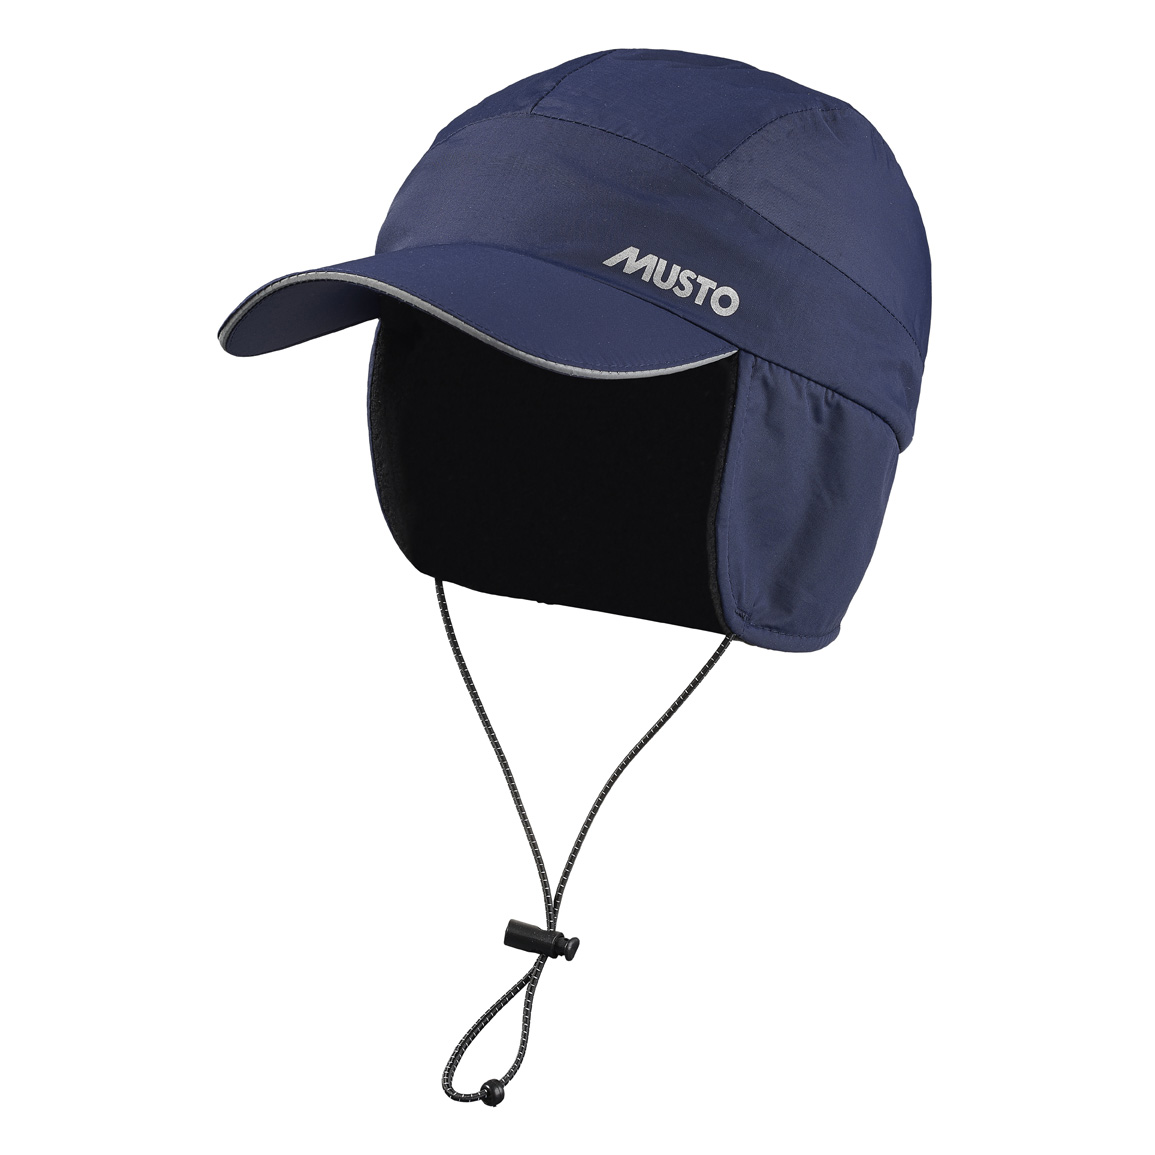 MUSTO WATERPROOF FLEECE LINED CAP (AE0080)